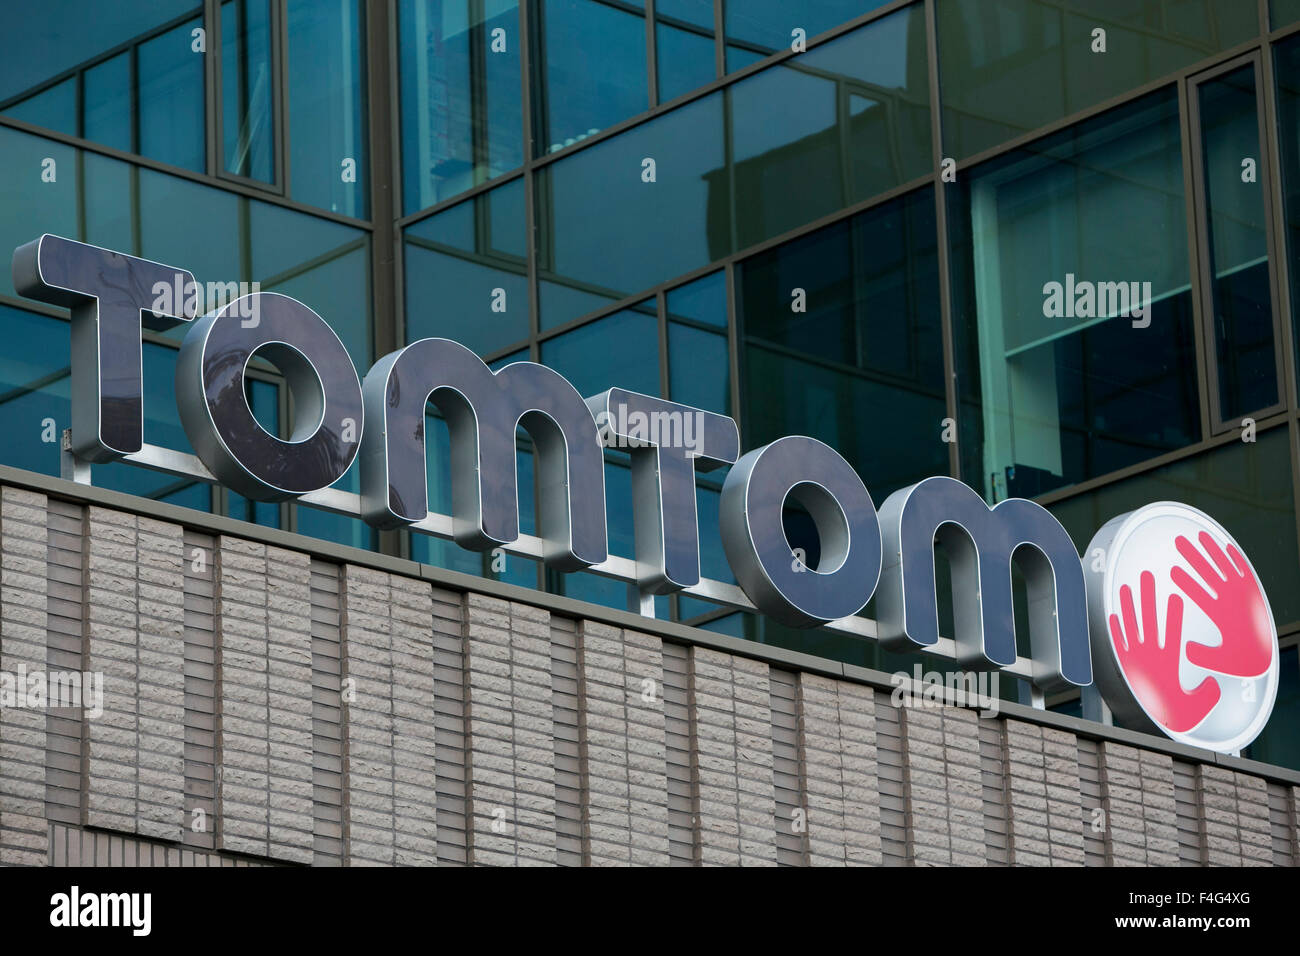 A logo sign outside of the headquarters of TomTom NV in Amsterdam, Netherlands on October 3, 2015. - Stock Image